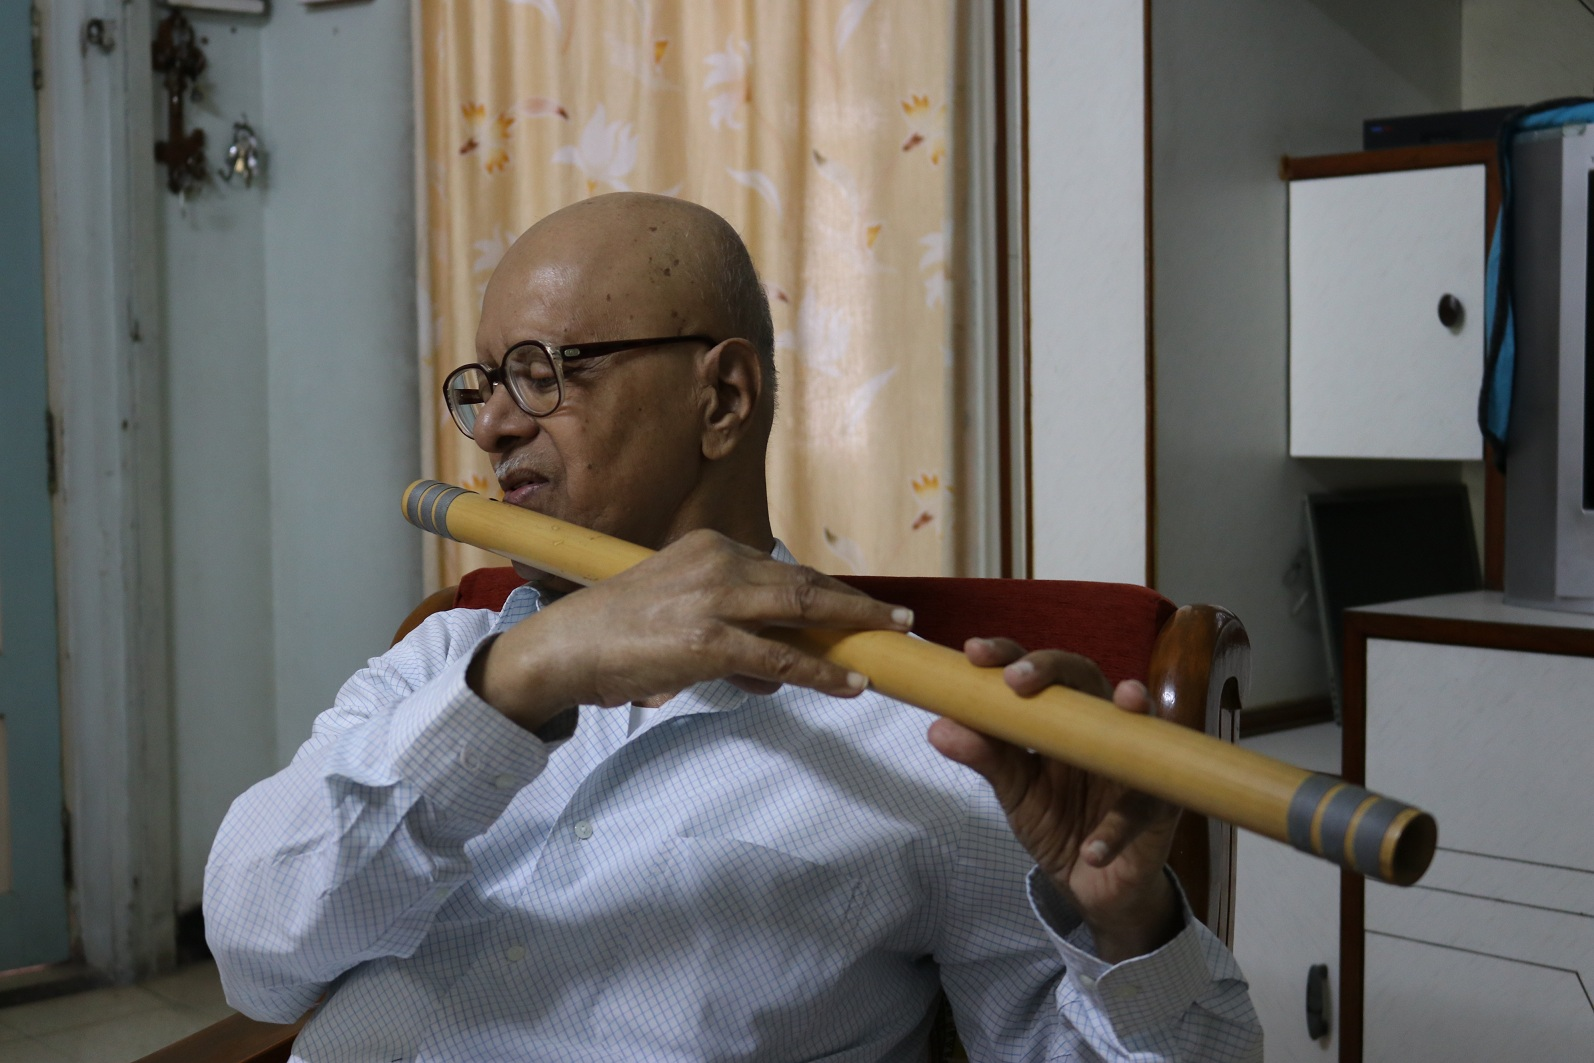 75-year-old visually-impaired artist plays flute & draws sketches